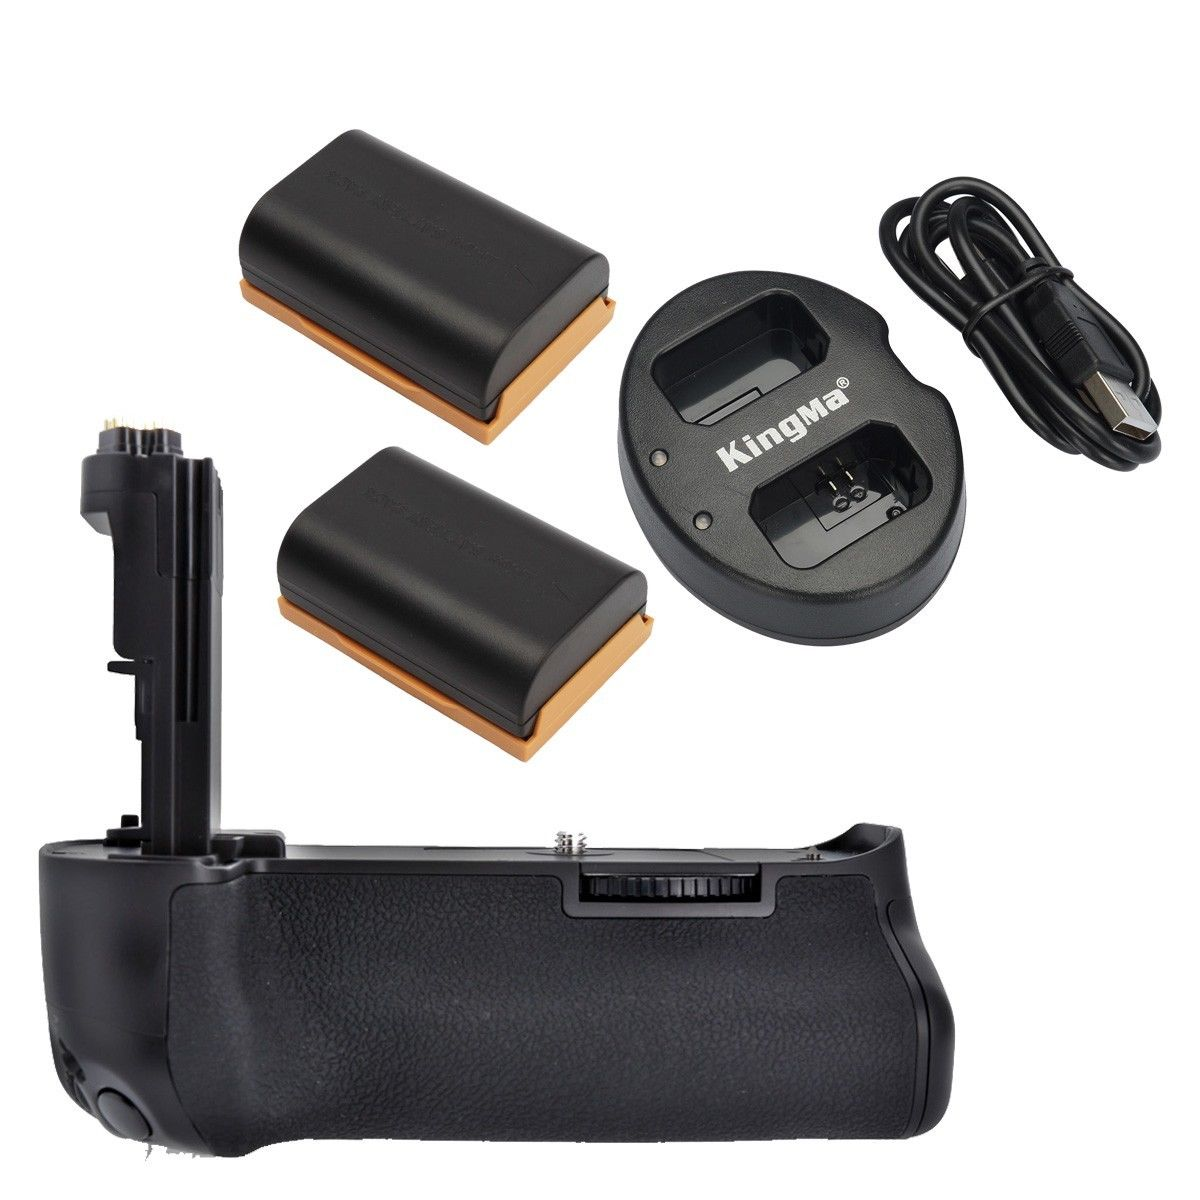 Meike MK-5D3 BG-E11 Battery Grip+2* LP-E6+USB Charger for Canon Eos 5D Mark III 5D3 Camera as BG-E11 3 2 3 2 inch 2 5x 3 2 lcd viewfinder loupes magnifier viewer extender hood for canon 5d3 5d markiii 5d mark iii pentax k3 pb408